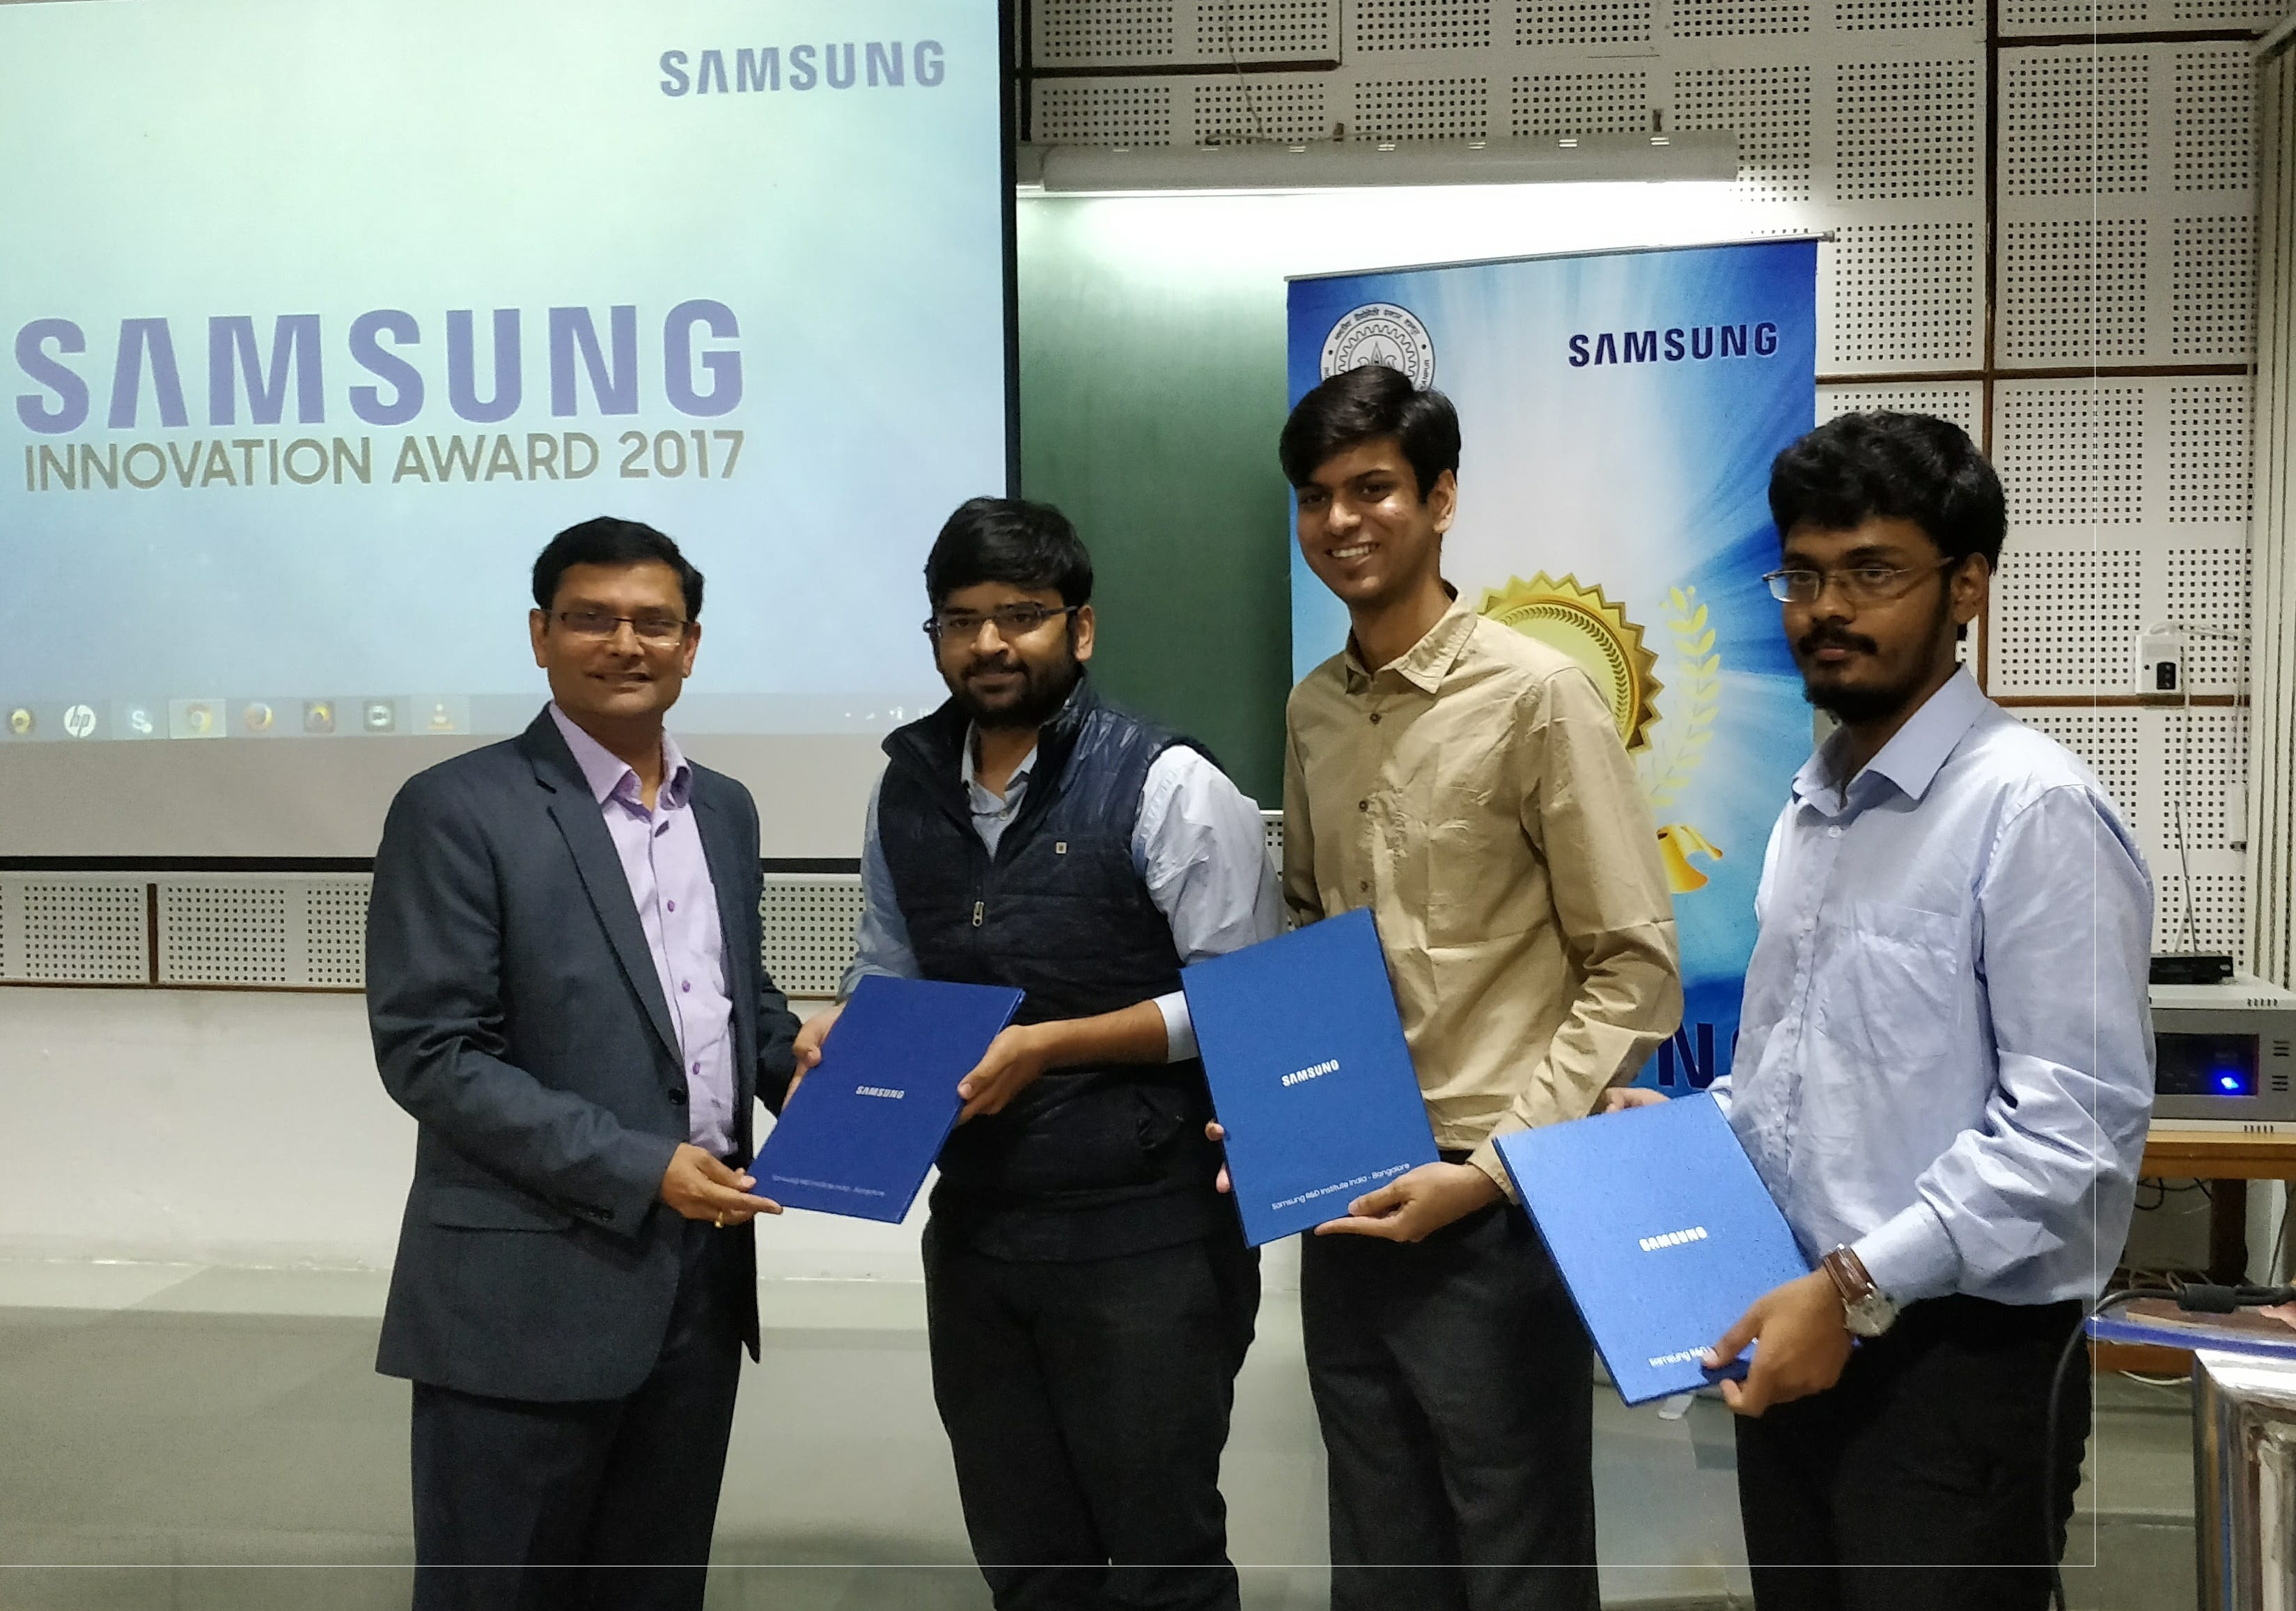 Samsung Innovation Awards 2017 Held at IIT Kanpur